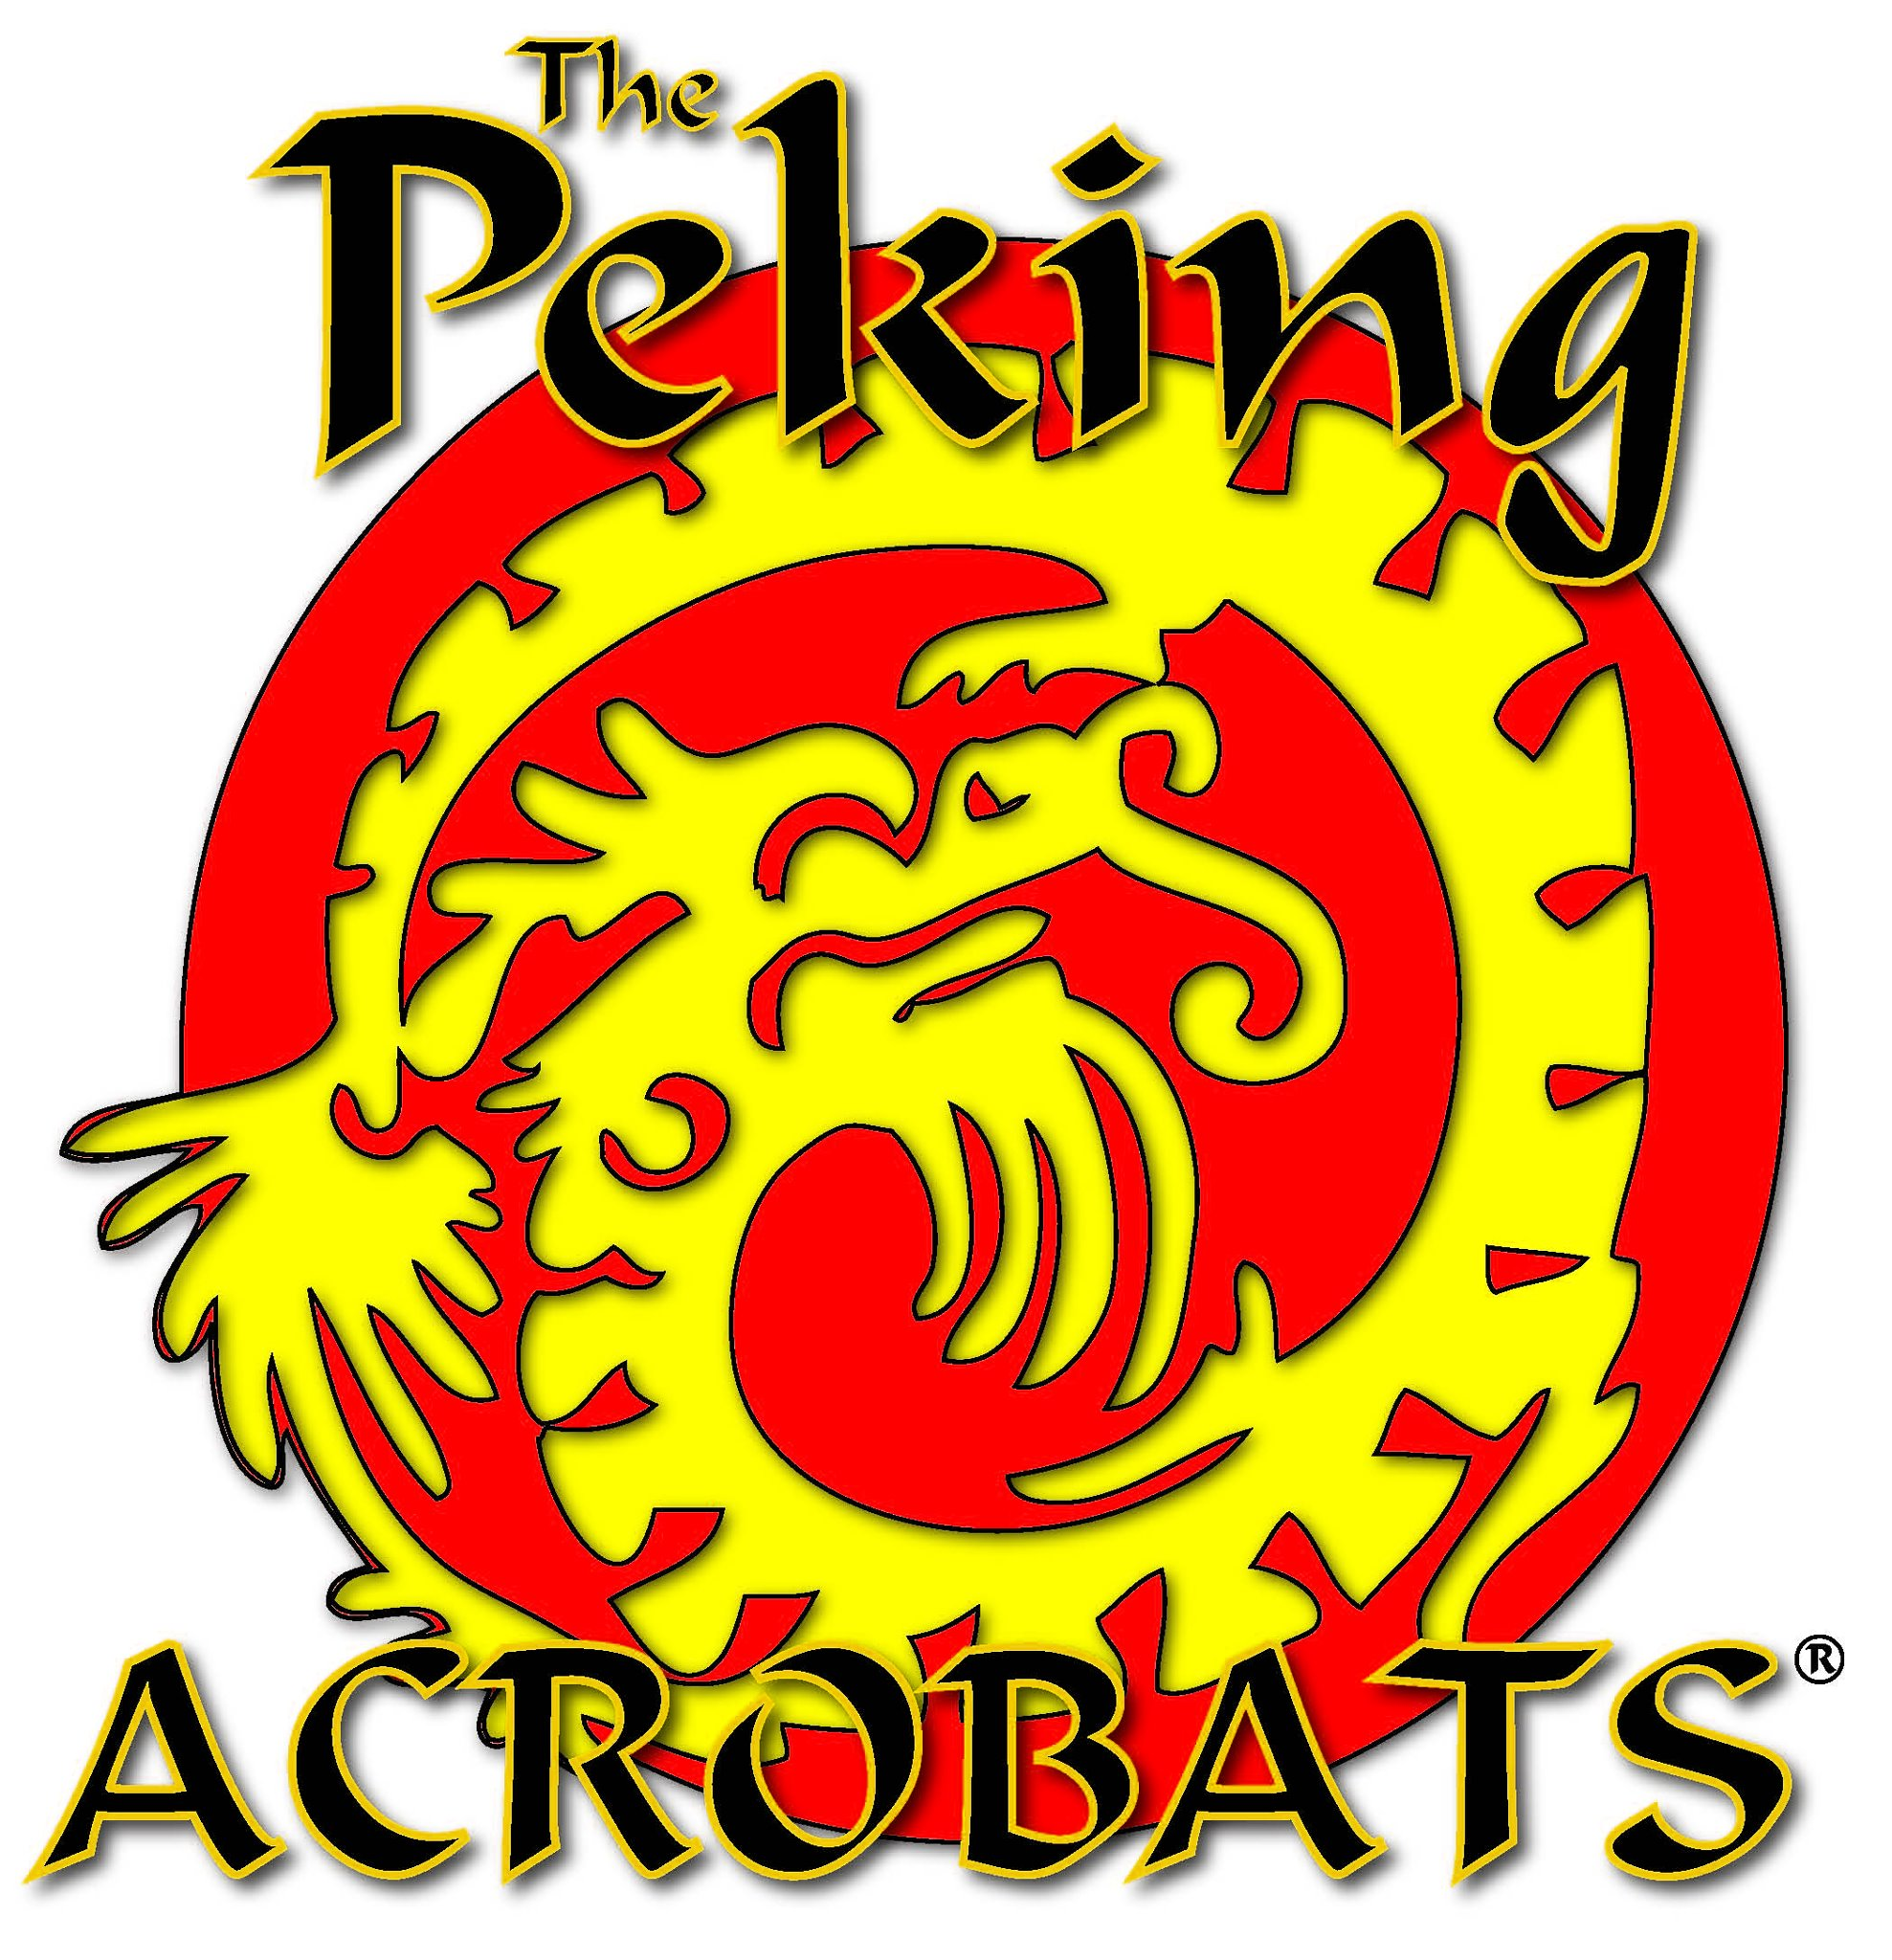 The-Peking-Acrobats